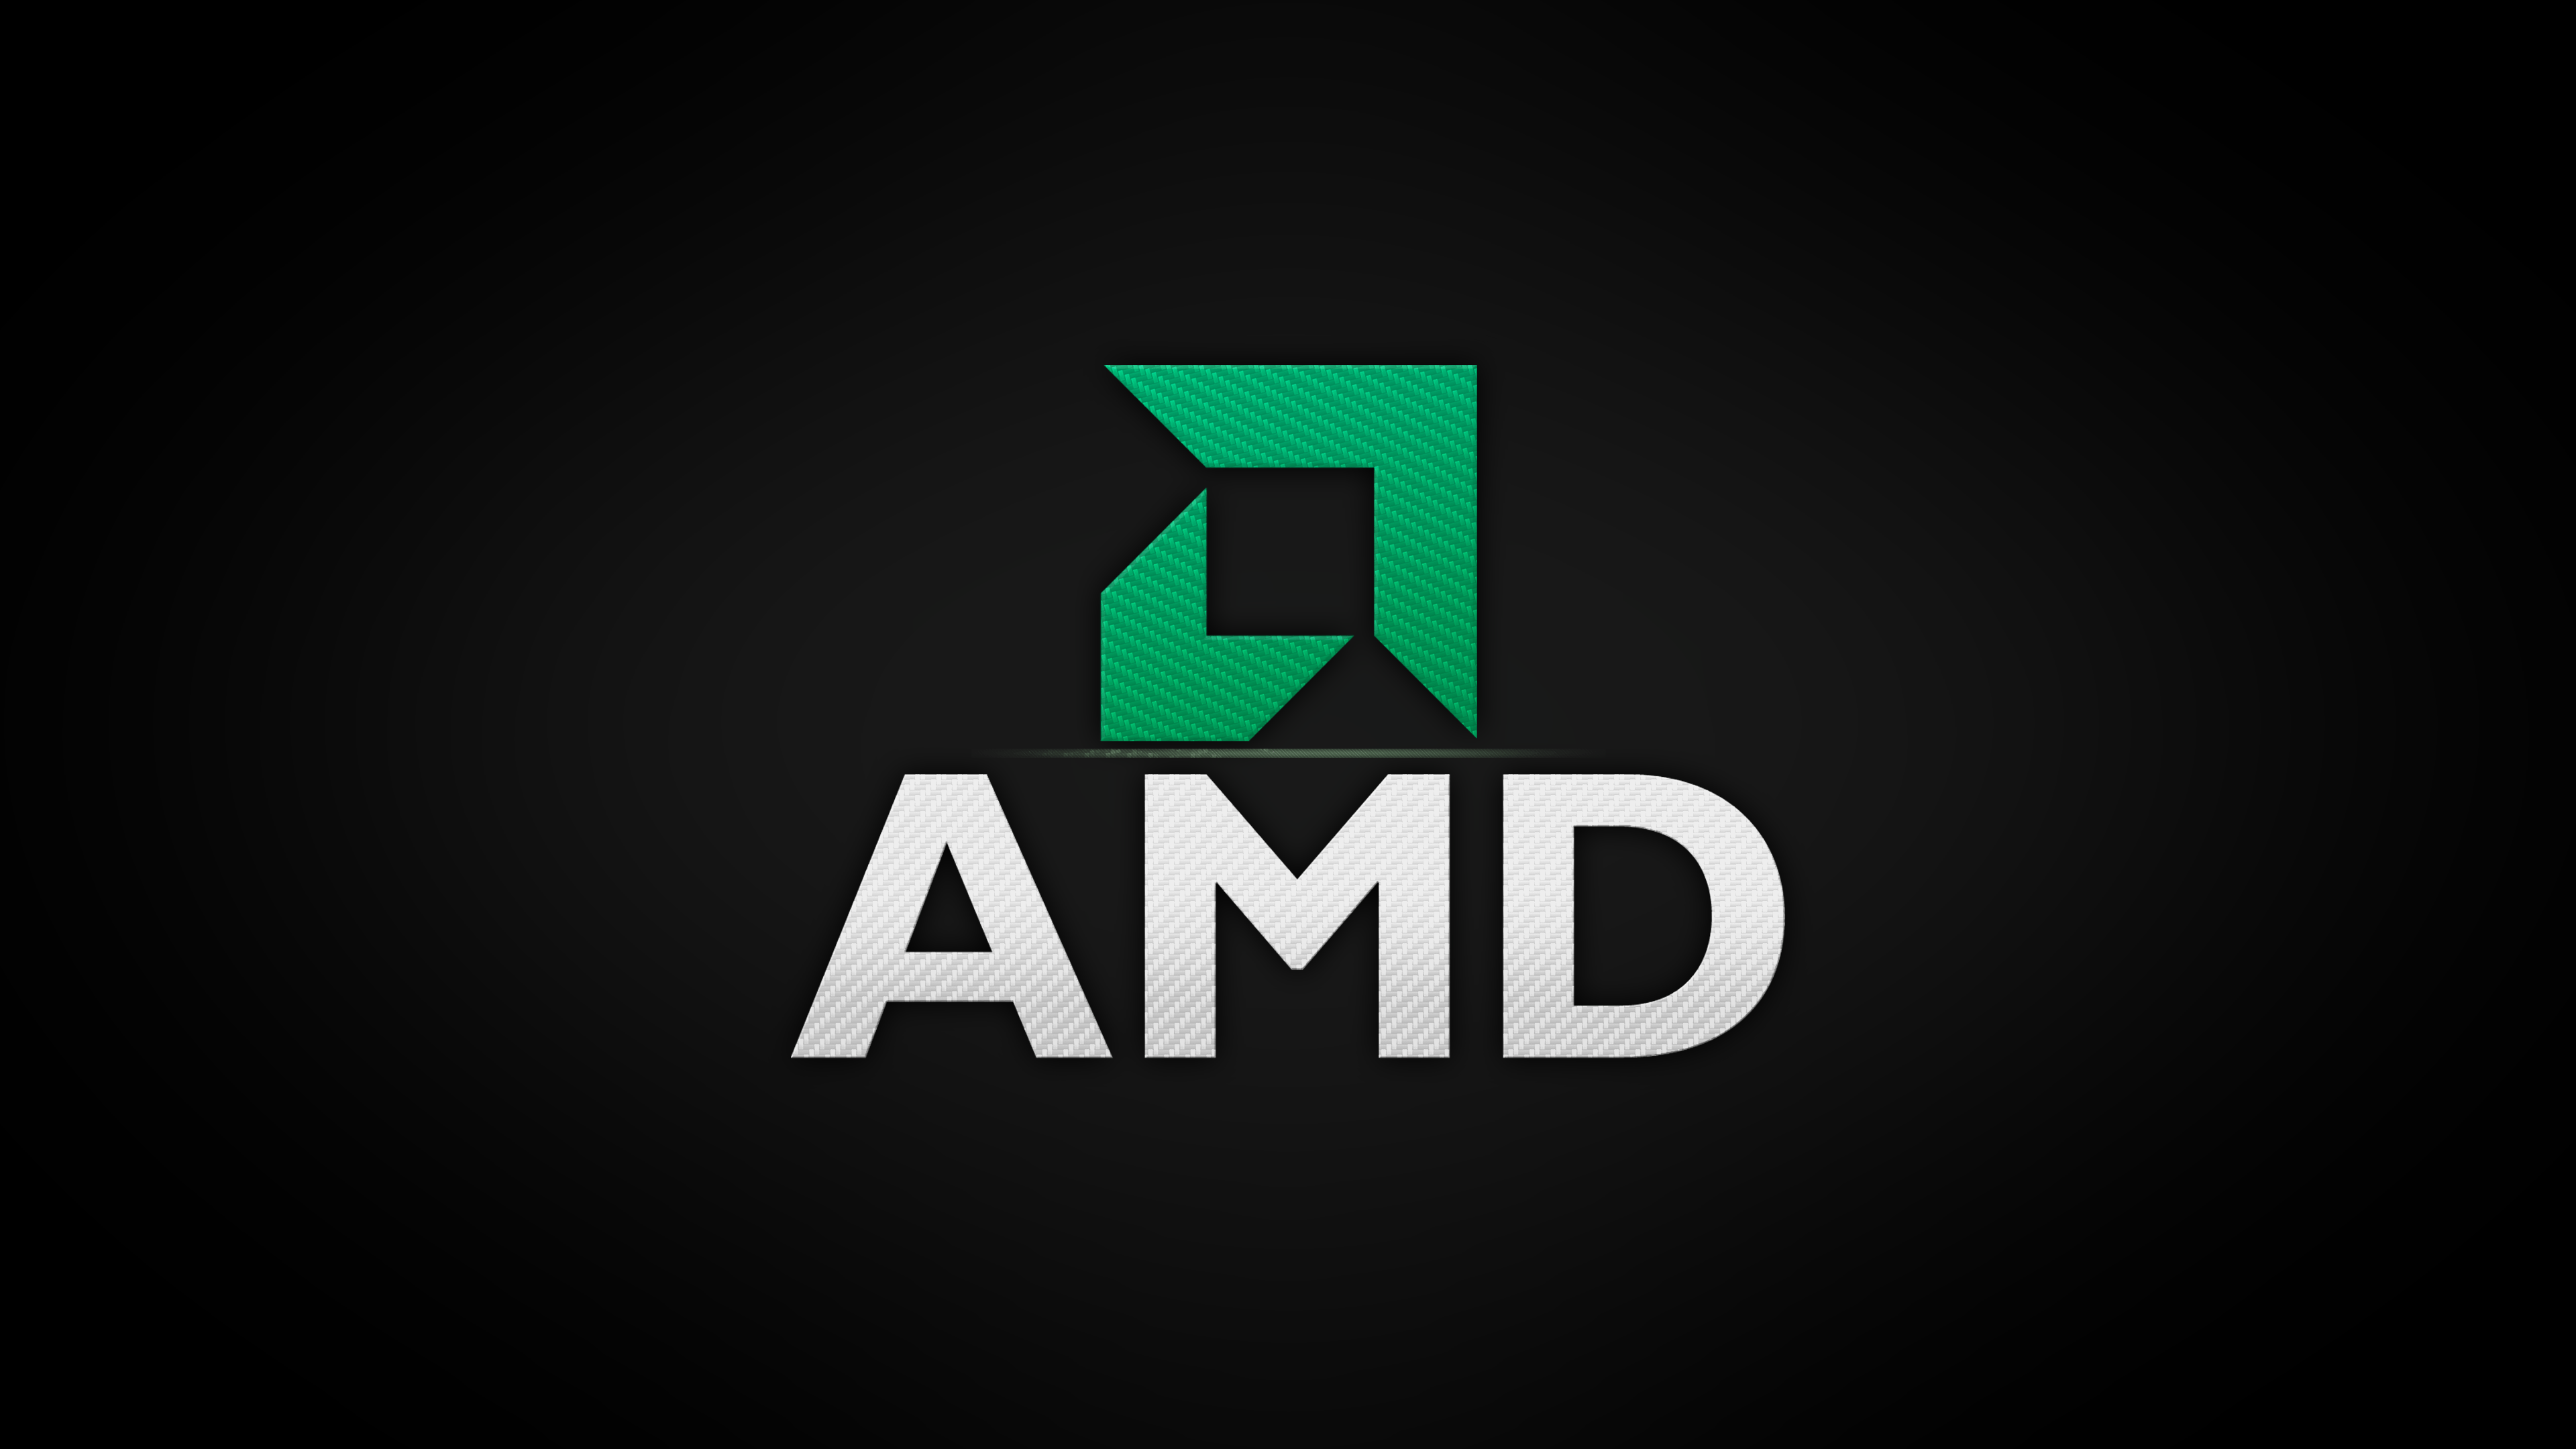 AMD Logo - Amd Brand Logo, HD Logo, 4k Wallpapers, Images, Backgrounds, Photos ...